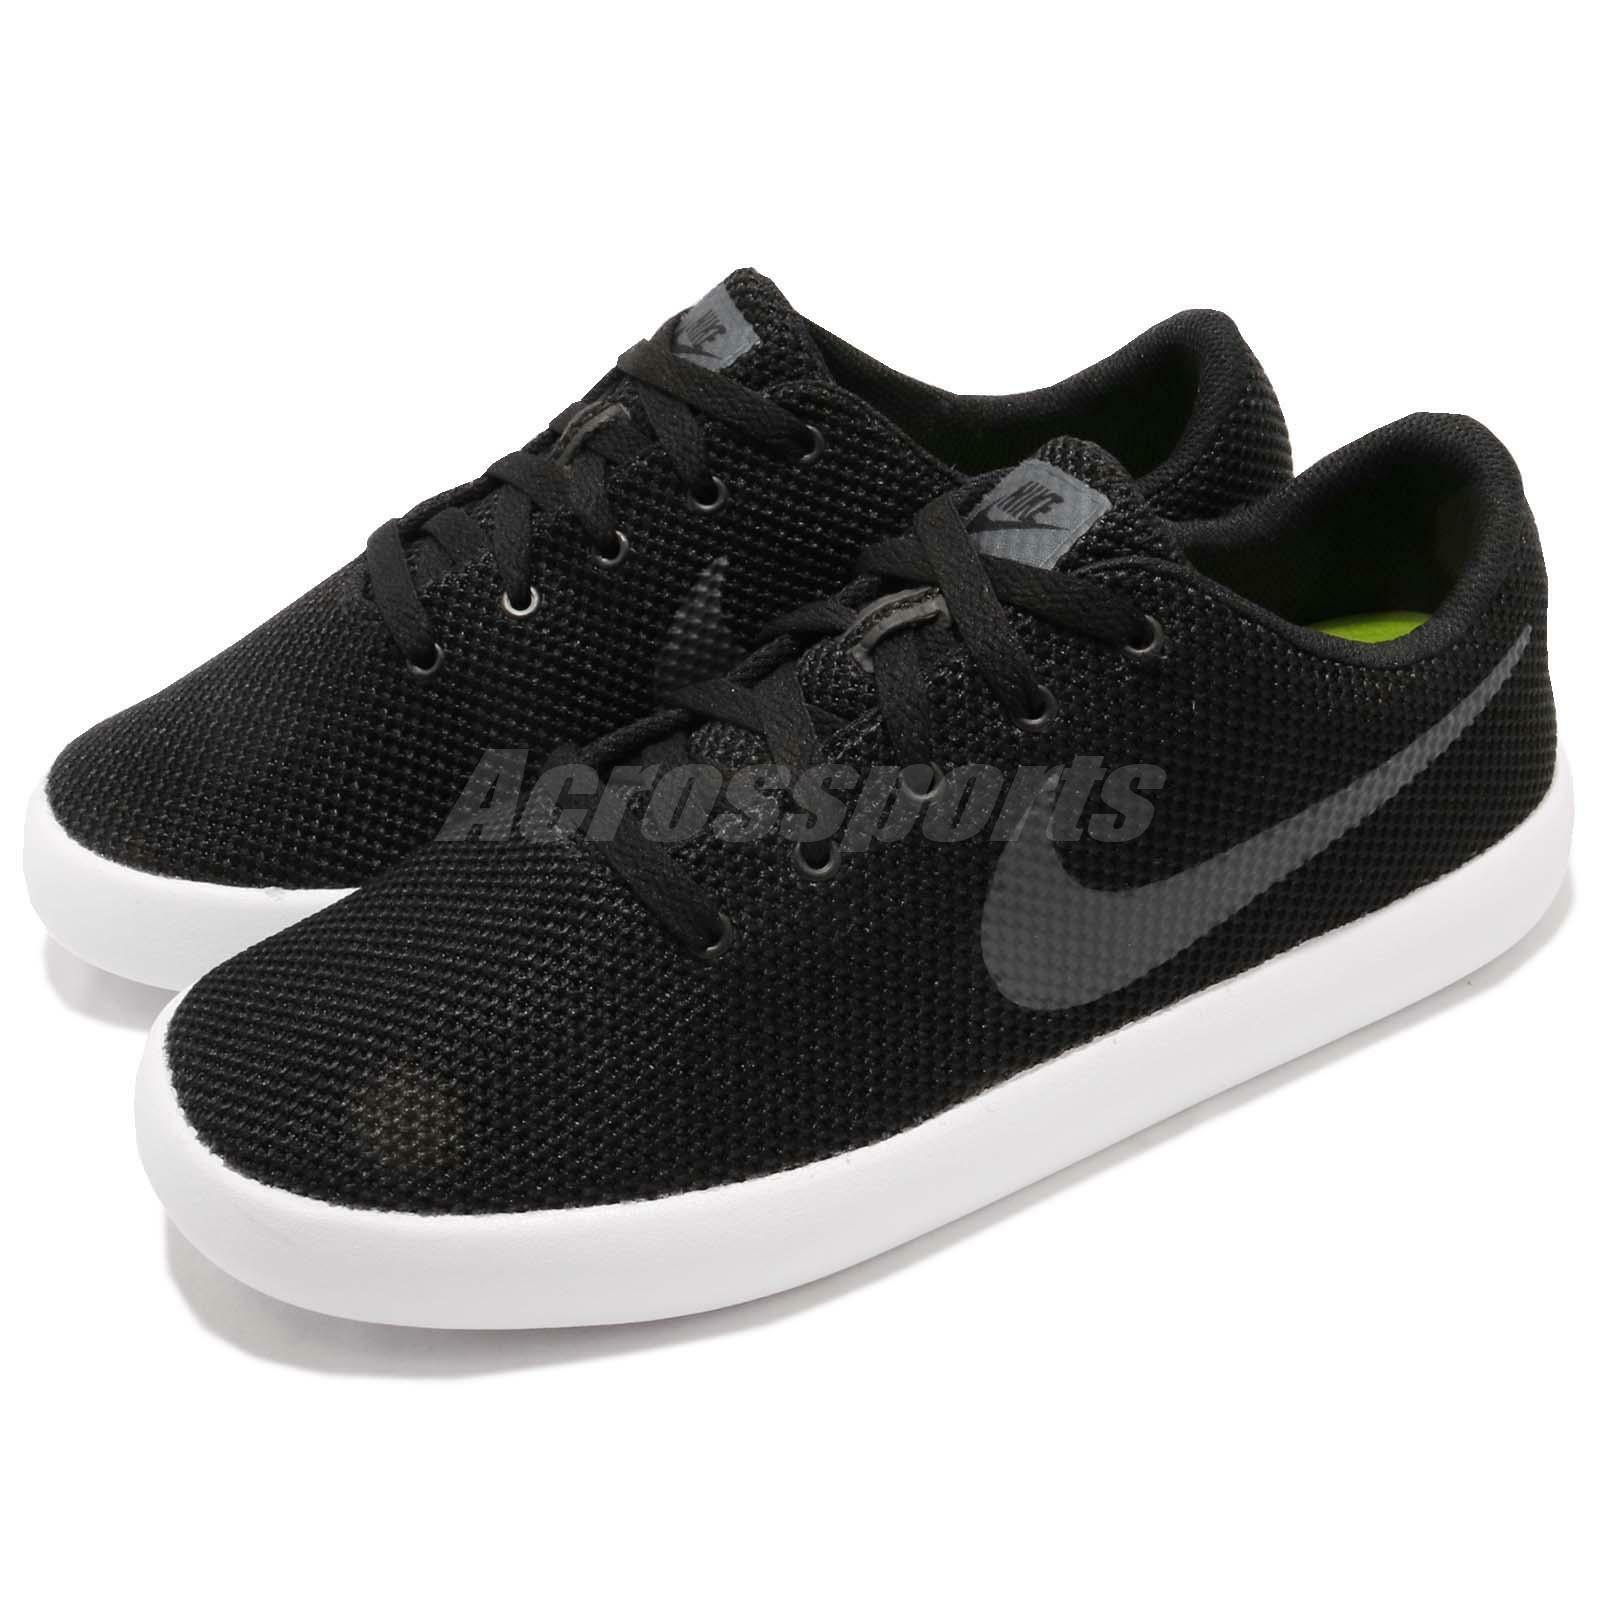 Nike Essentialist Black Grey White Mens Casual shoes Sneakers 819810-001